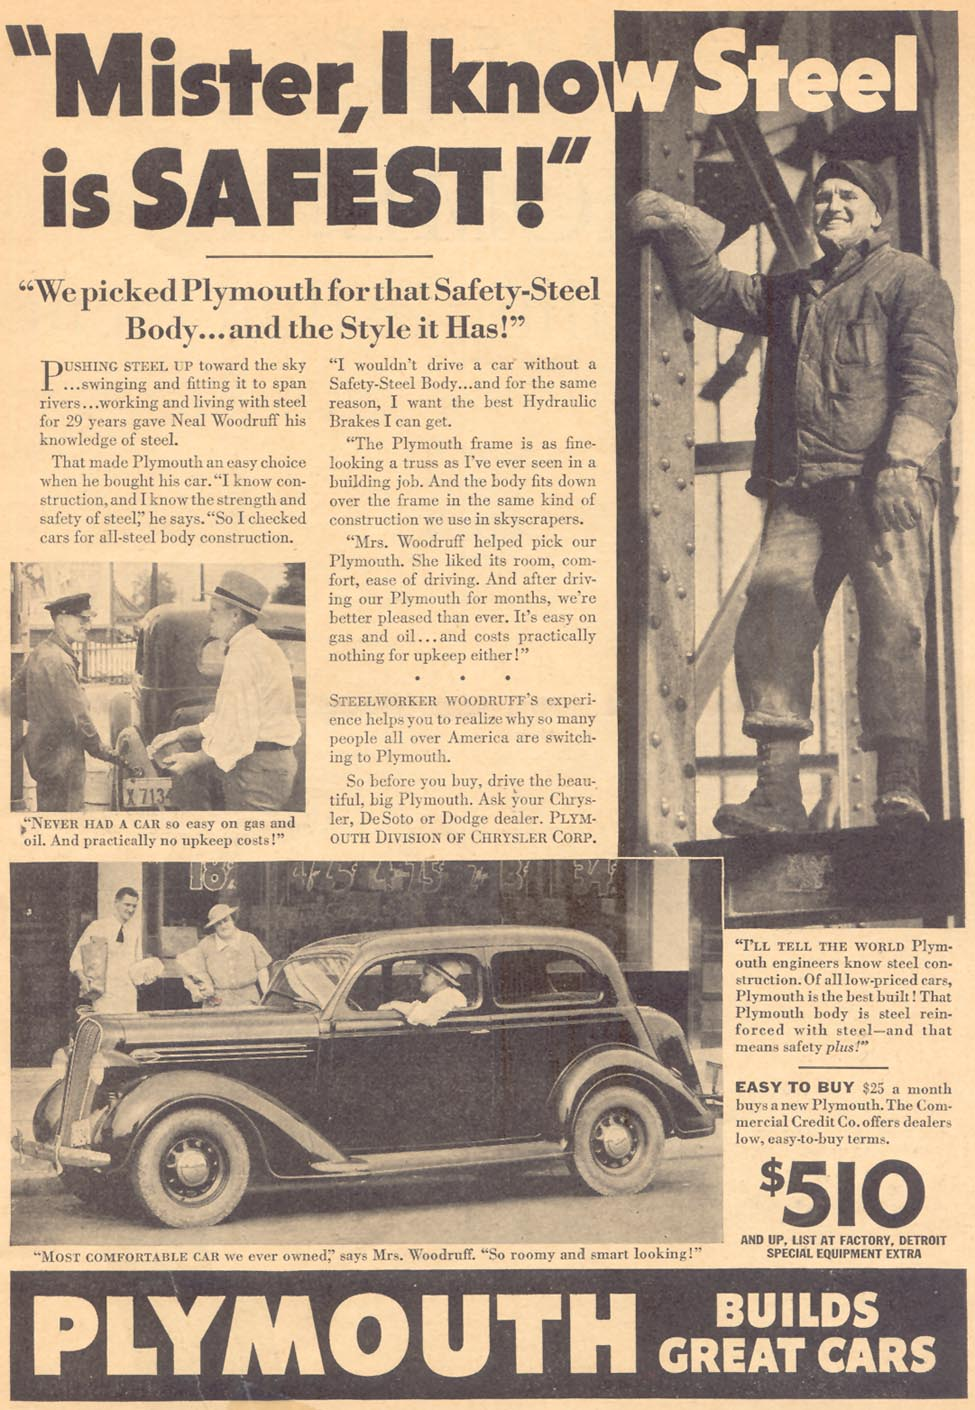 PLYMOUTH AUTOMOBILES LIBERTY 08/29/1936 p. 3